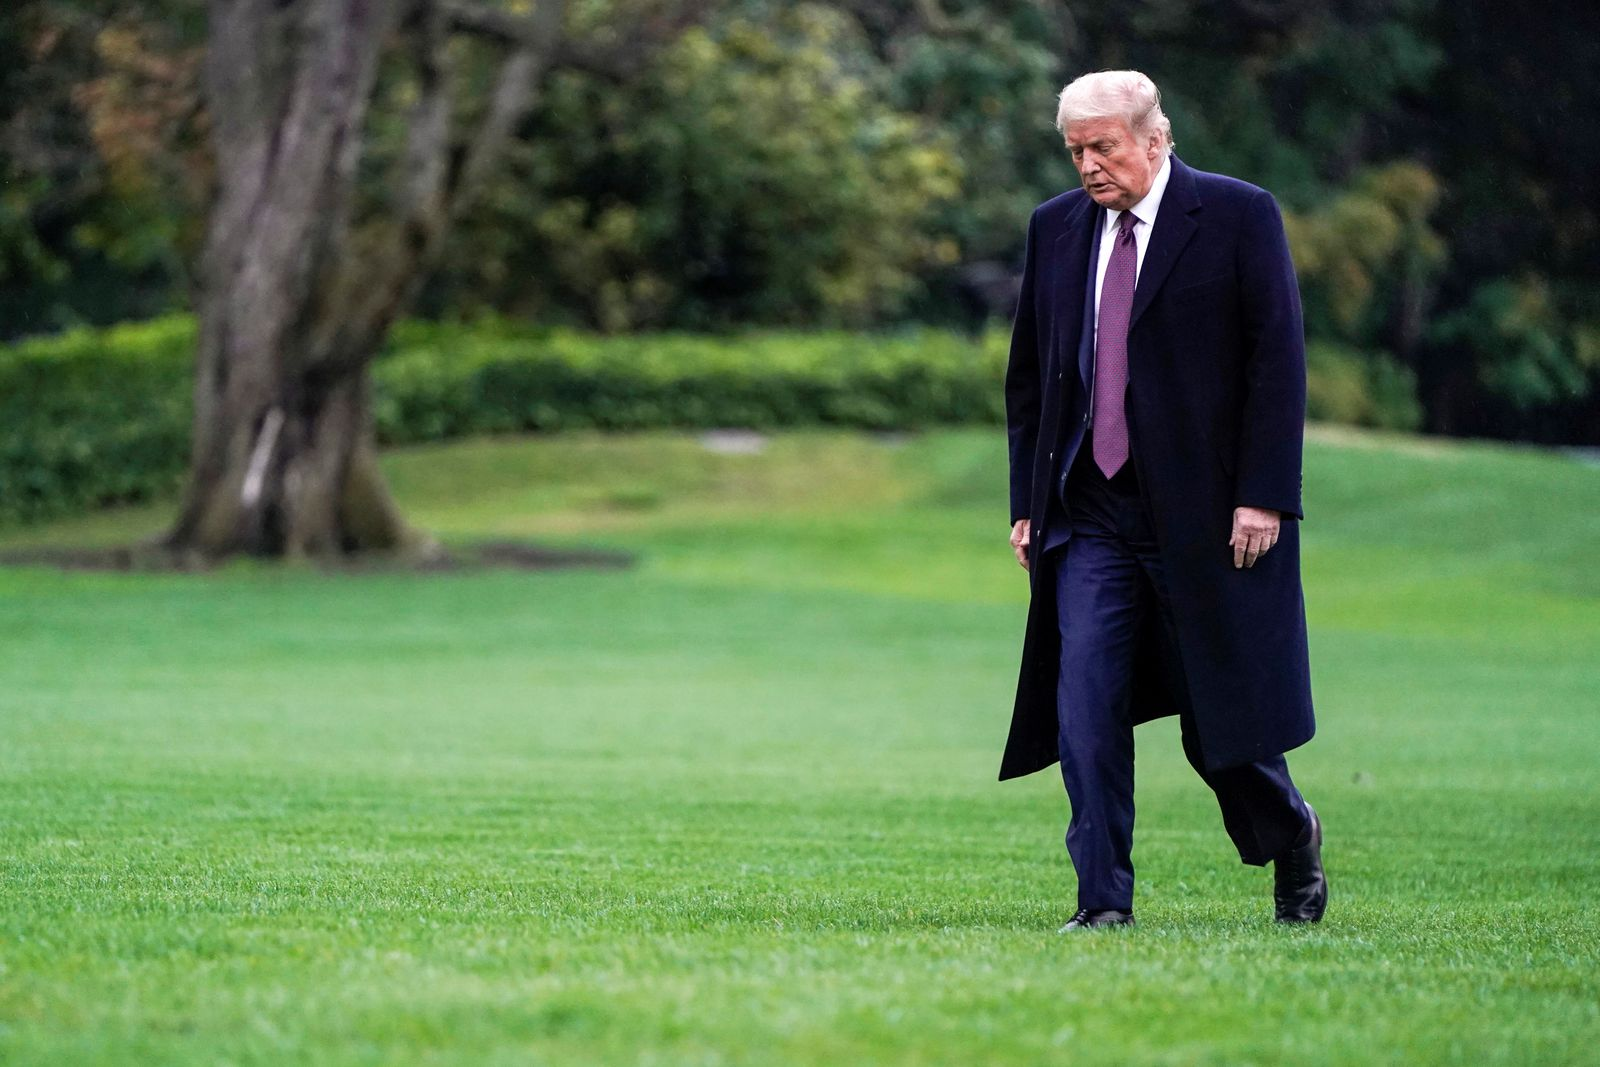 U.S. President Donald Trump arrives at the White House in Washington